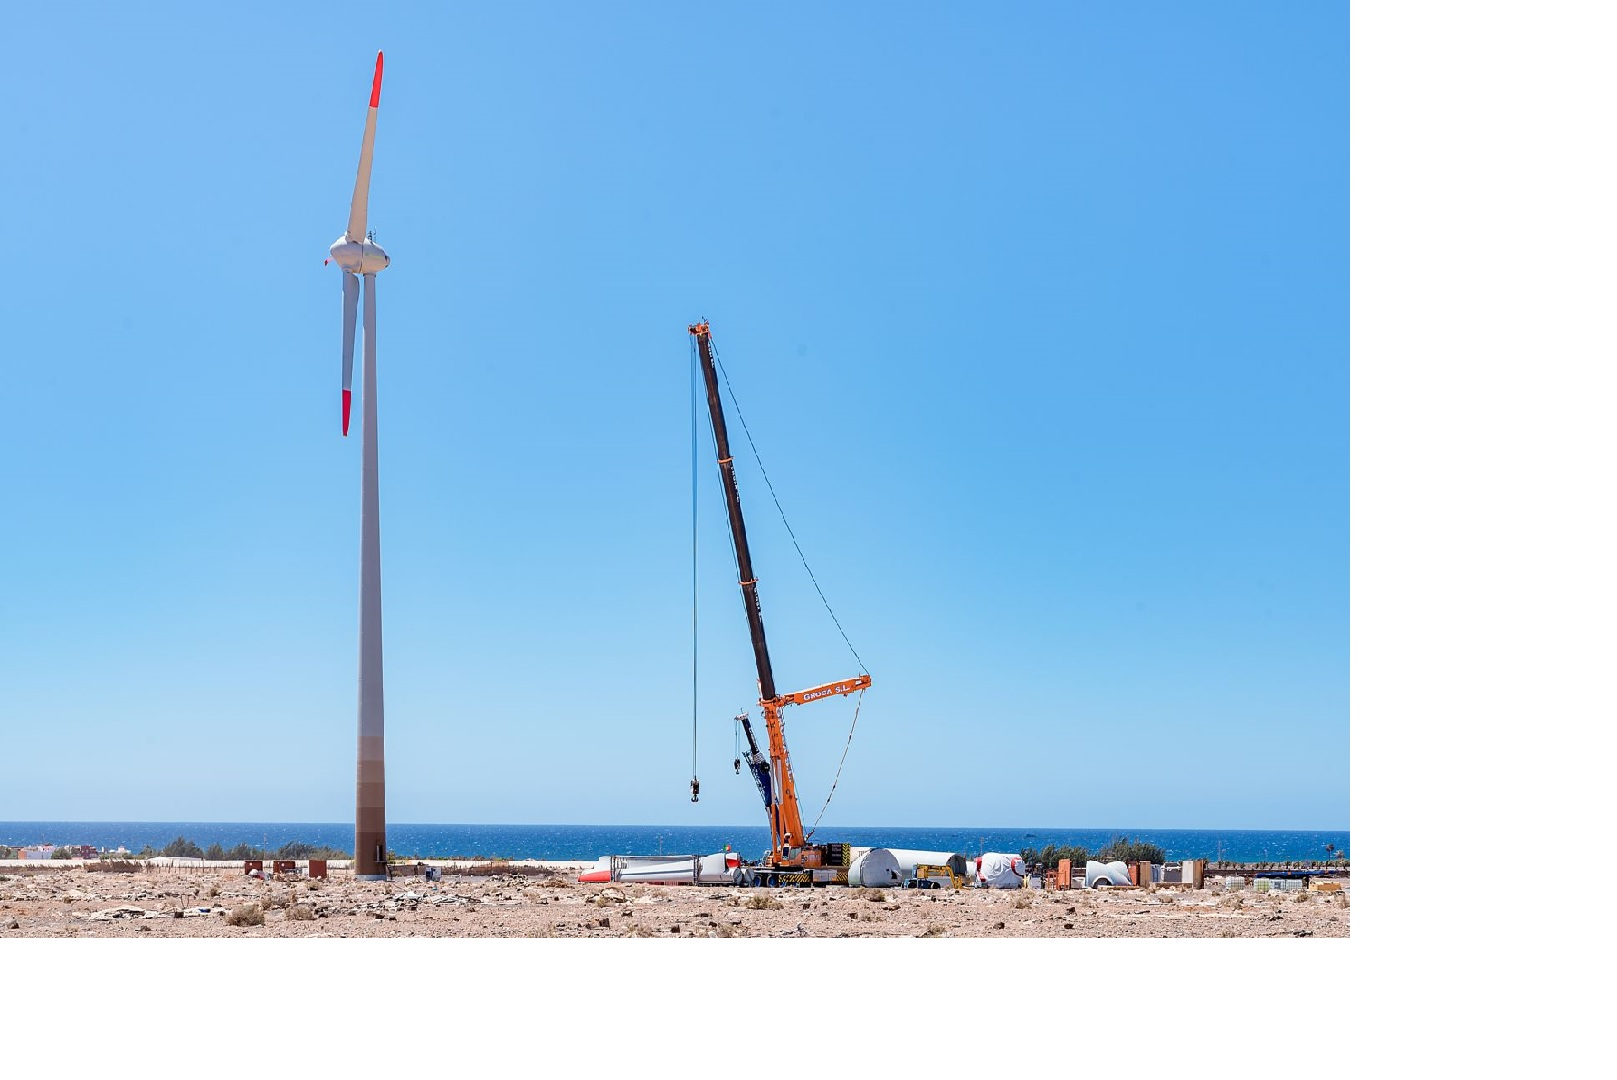 With an investment of €13million, Ecoener begins construction of two new wind farms in the Canary Islands